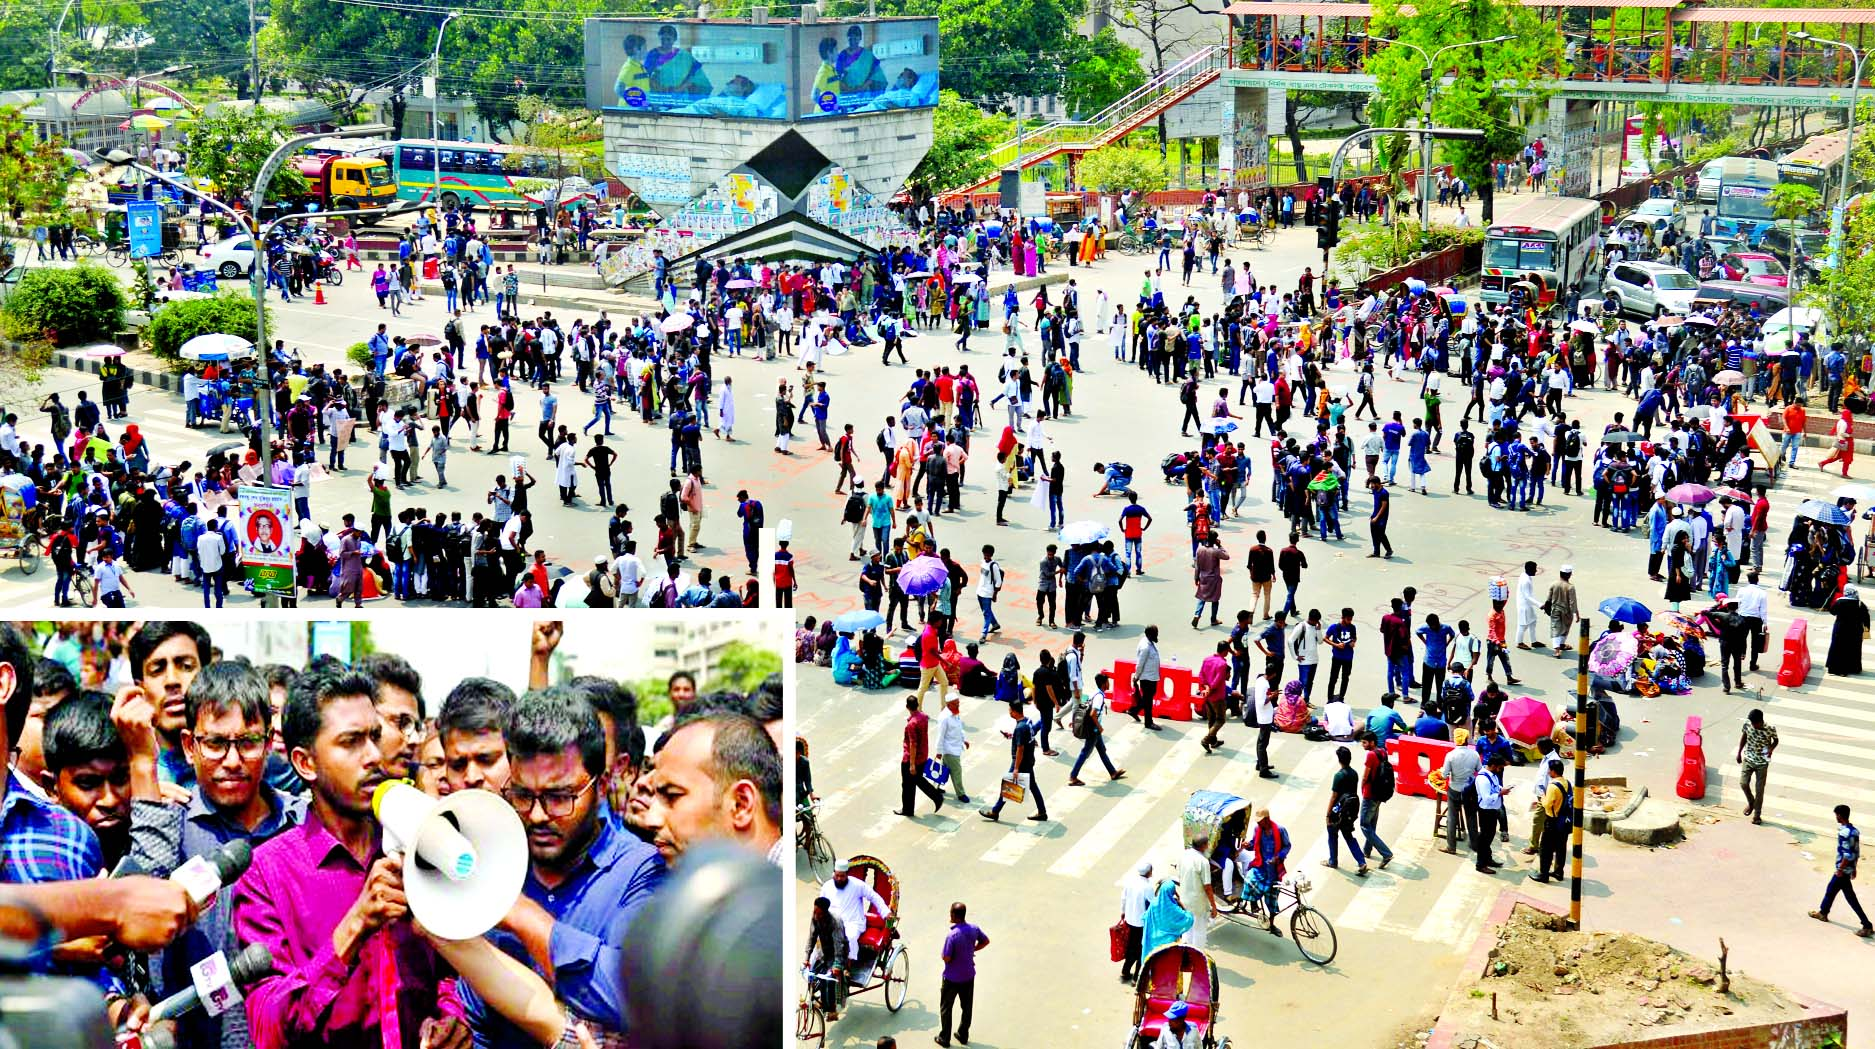 Hundreds of students of universities, colleges and schools also blocked the city's key Shahbagh intersection as movement for safe roads spread across the capital on Wednesday. (Inset) DUCSU VP Nurul Haque Nur addressing the demonstration as he and other leaders express solidarity with the movement.